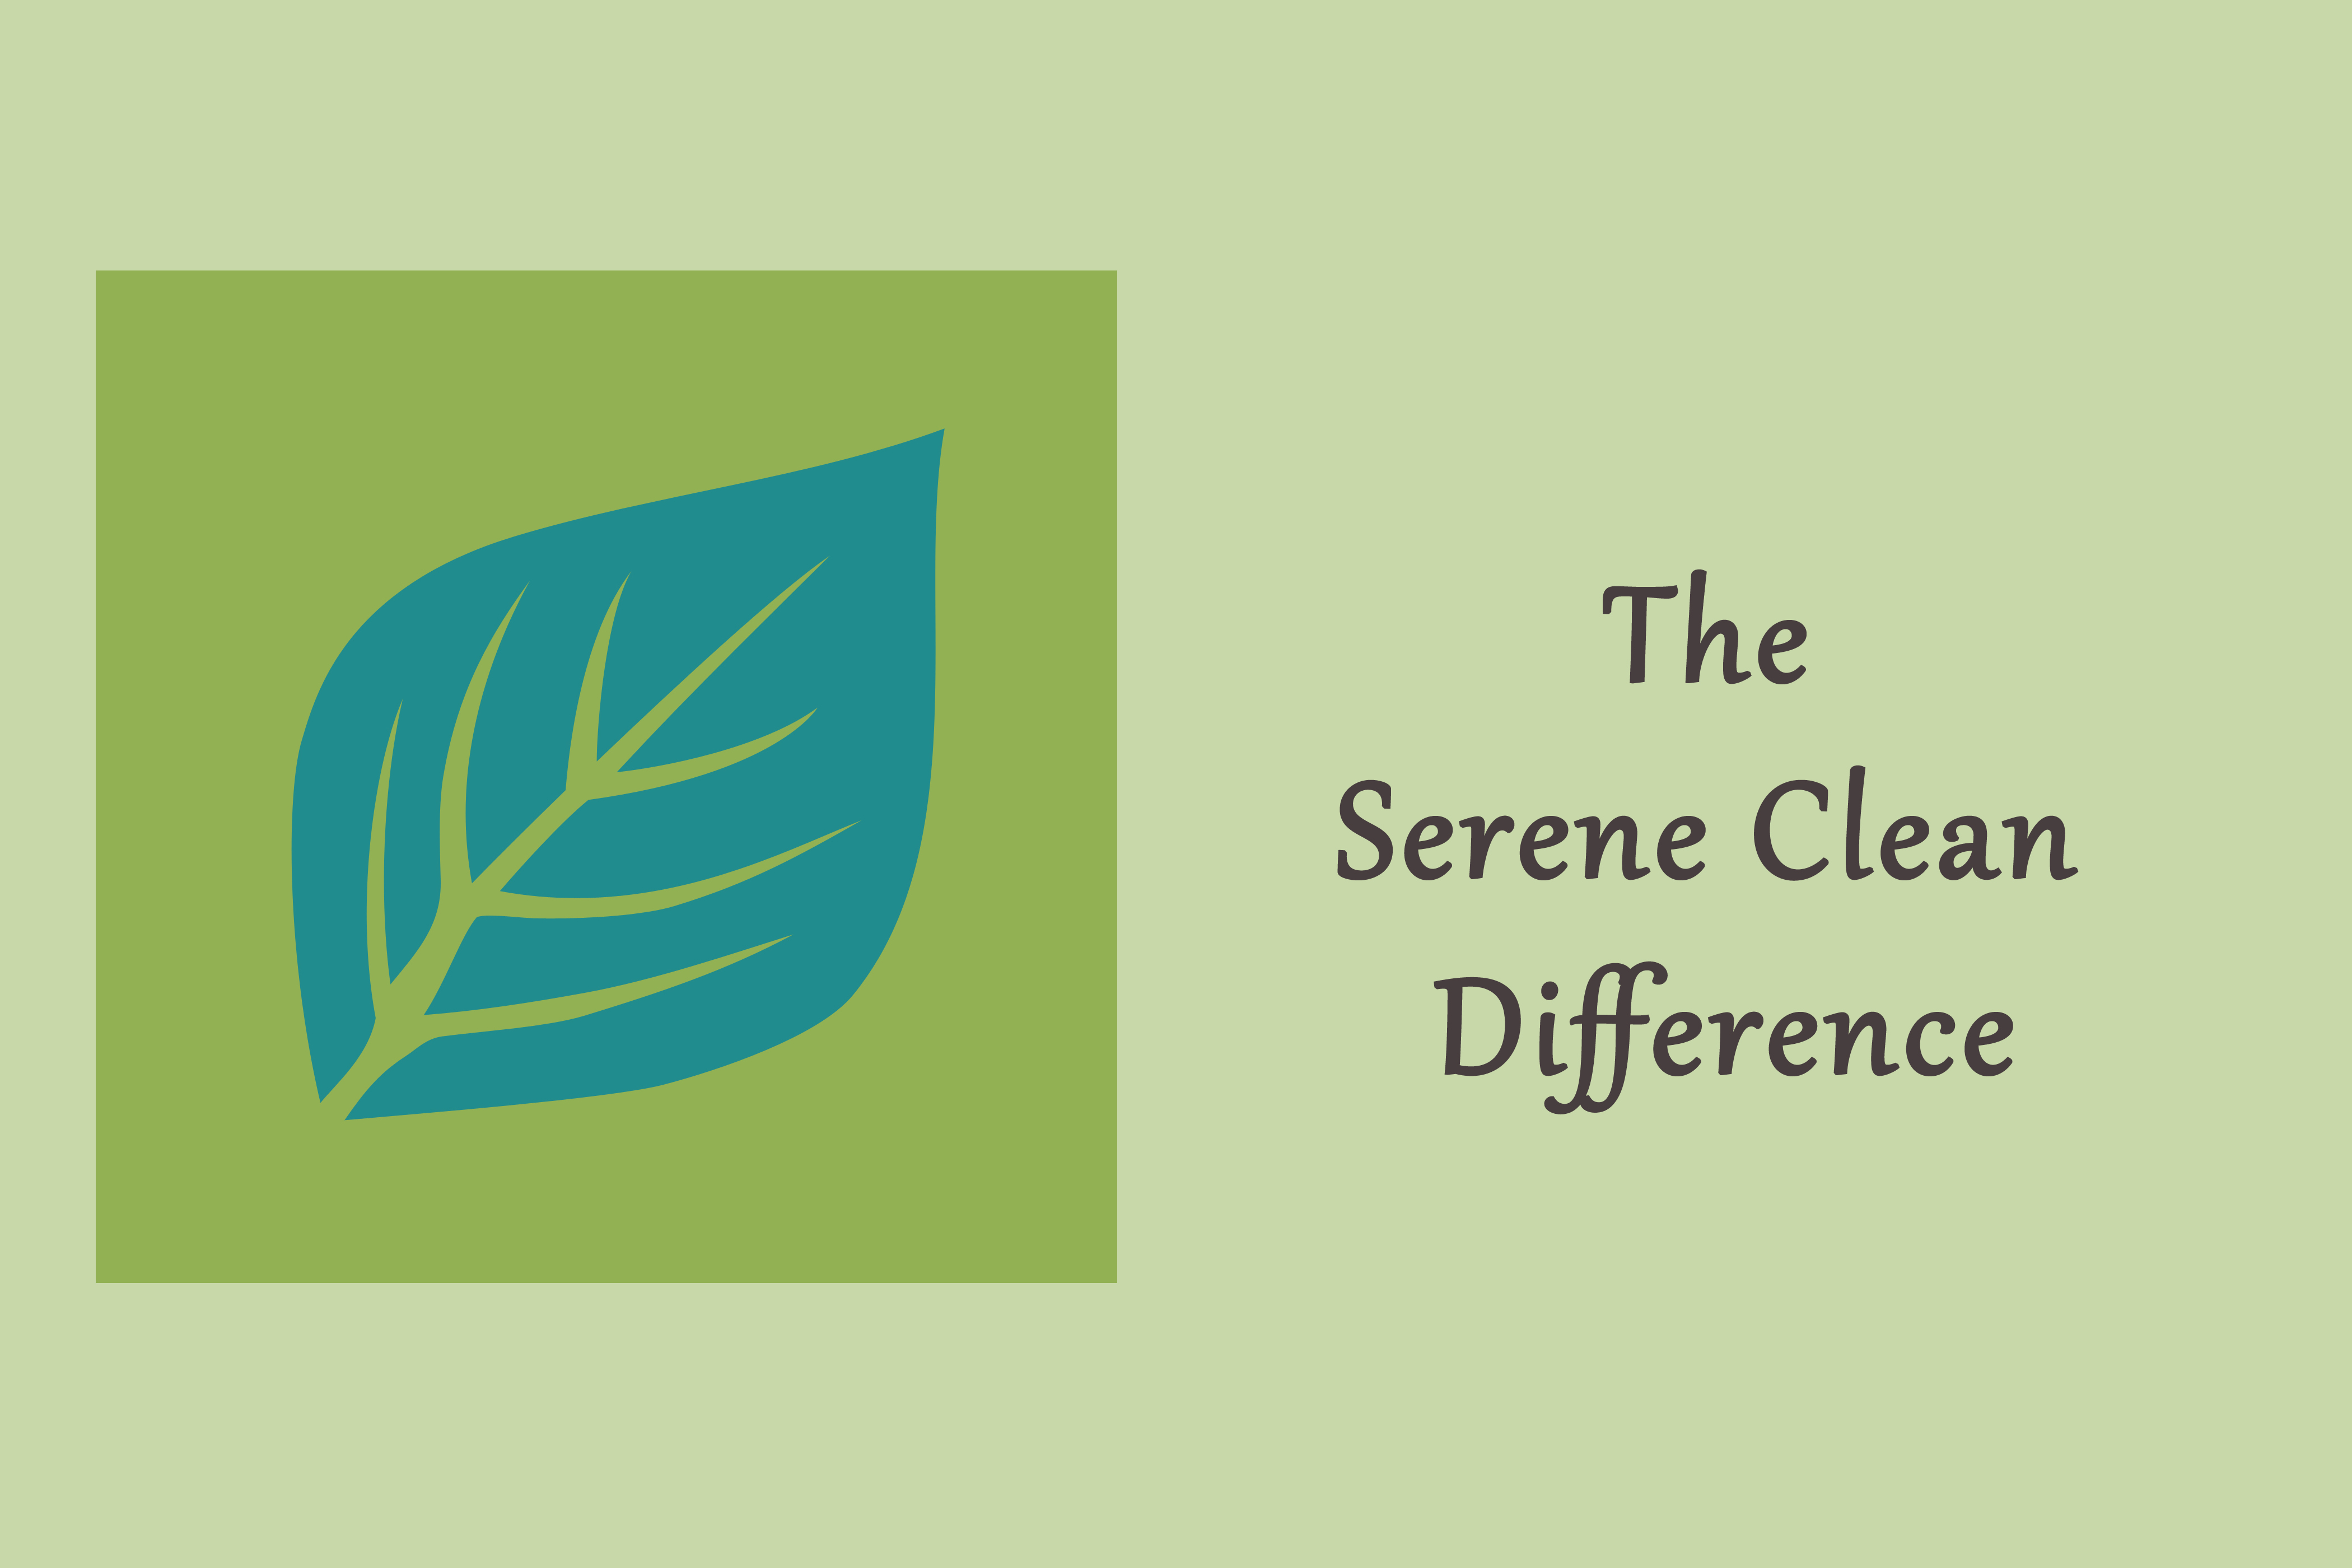 The Serene Clean Difference